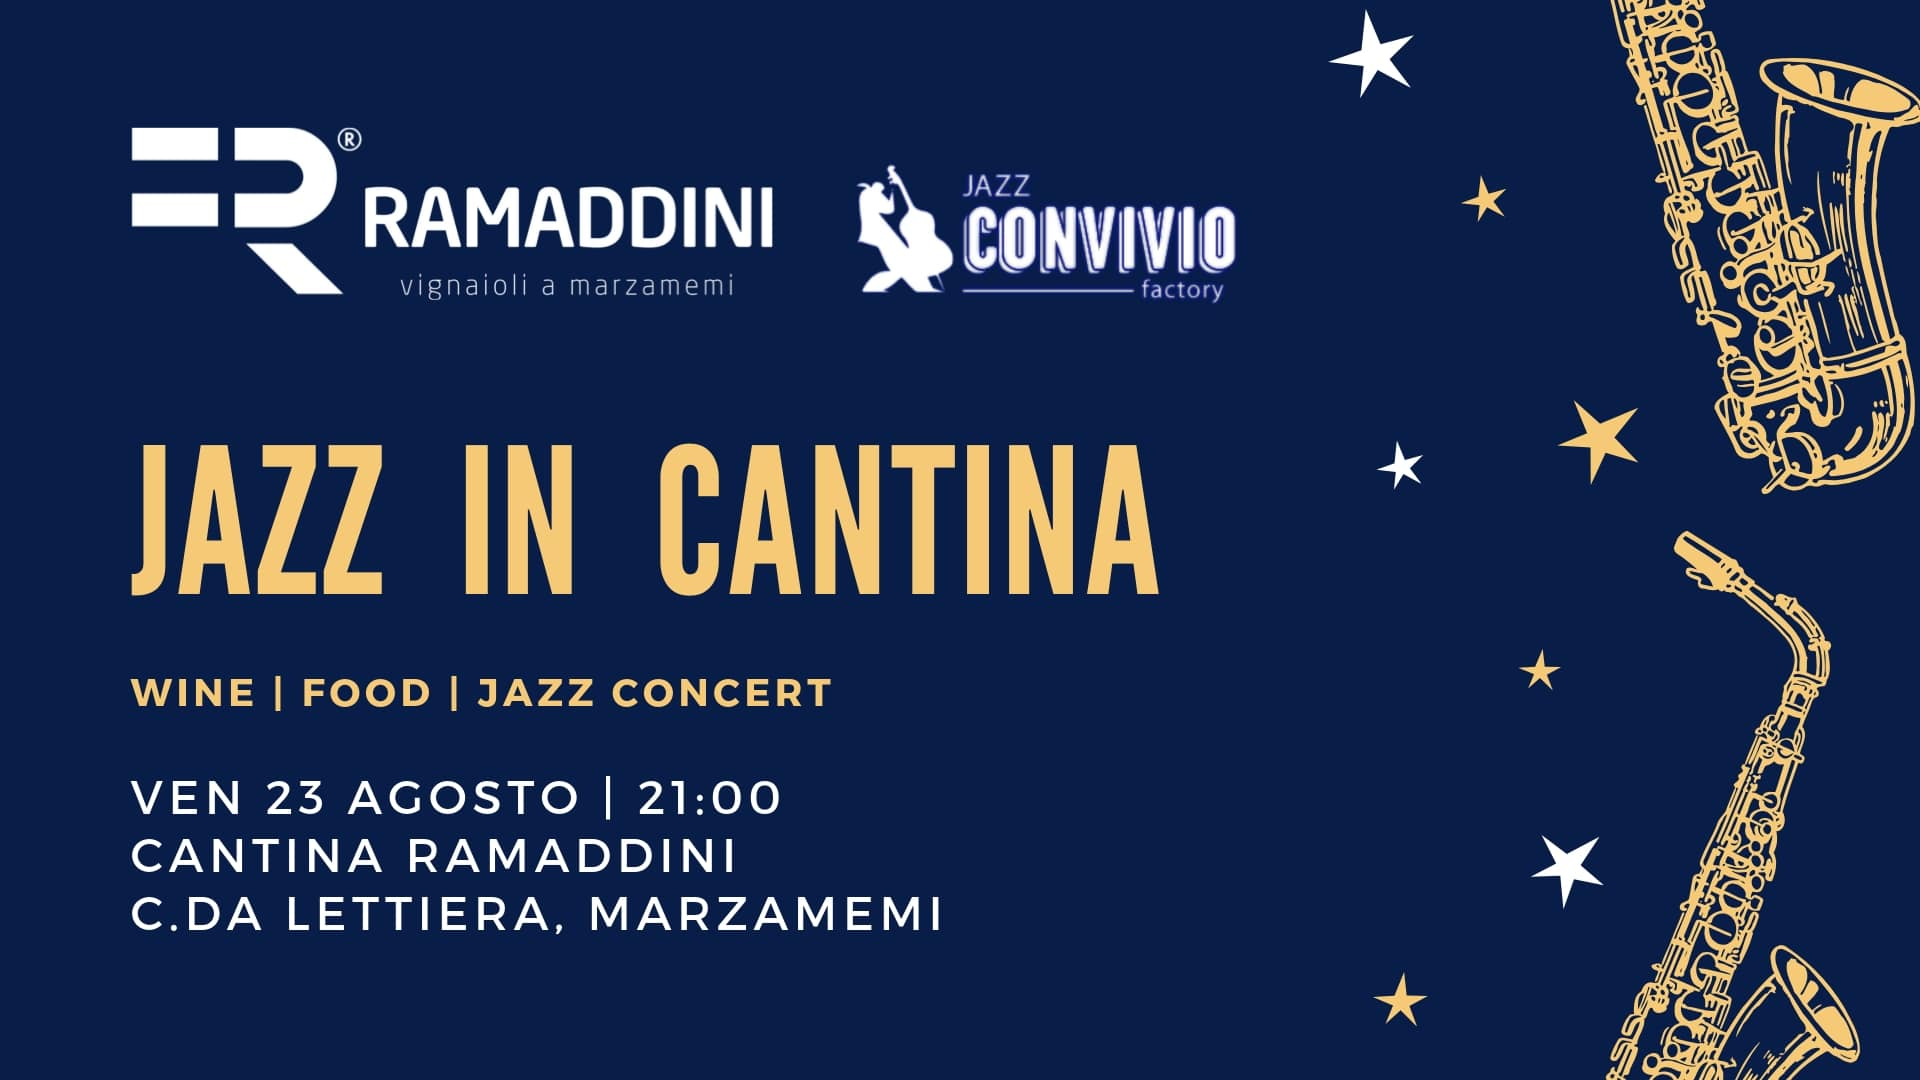 L'estate finisce in bellezza con JAZZ IN CANTINA!